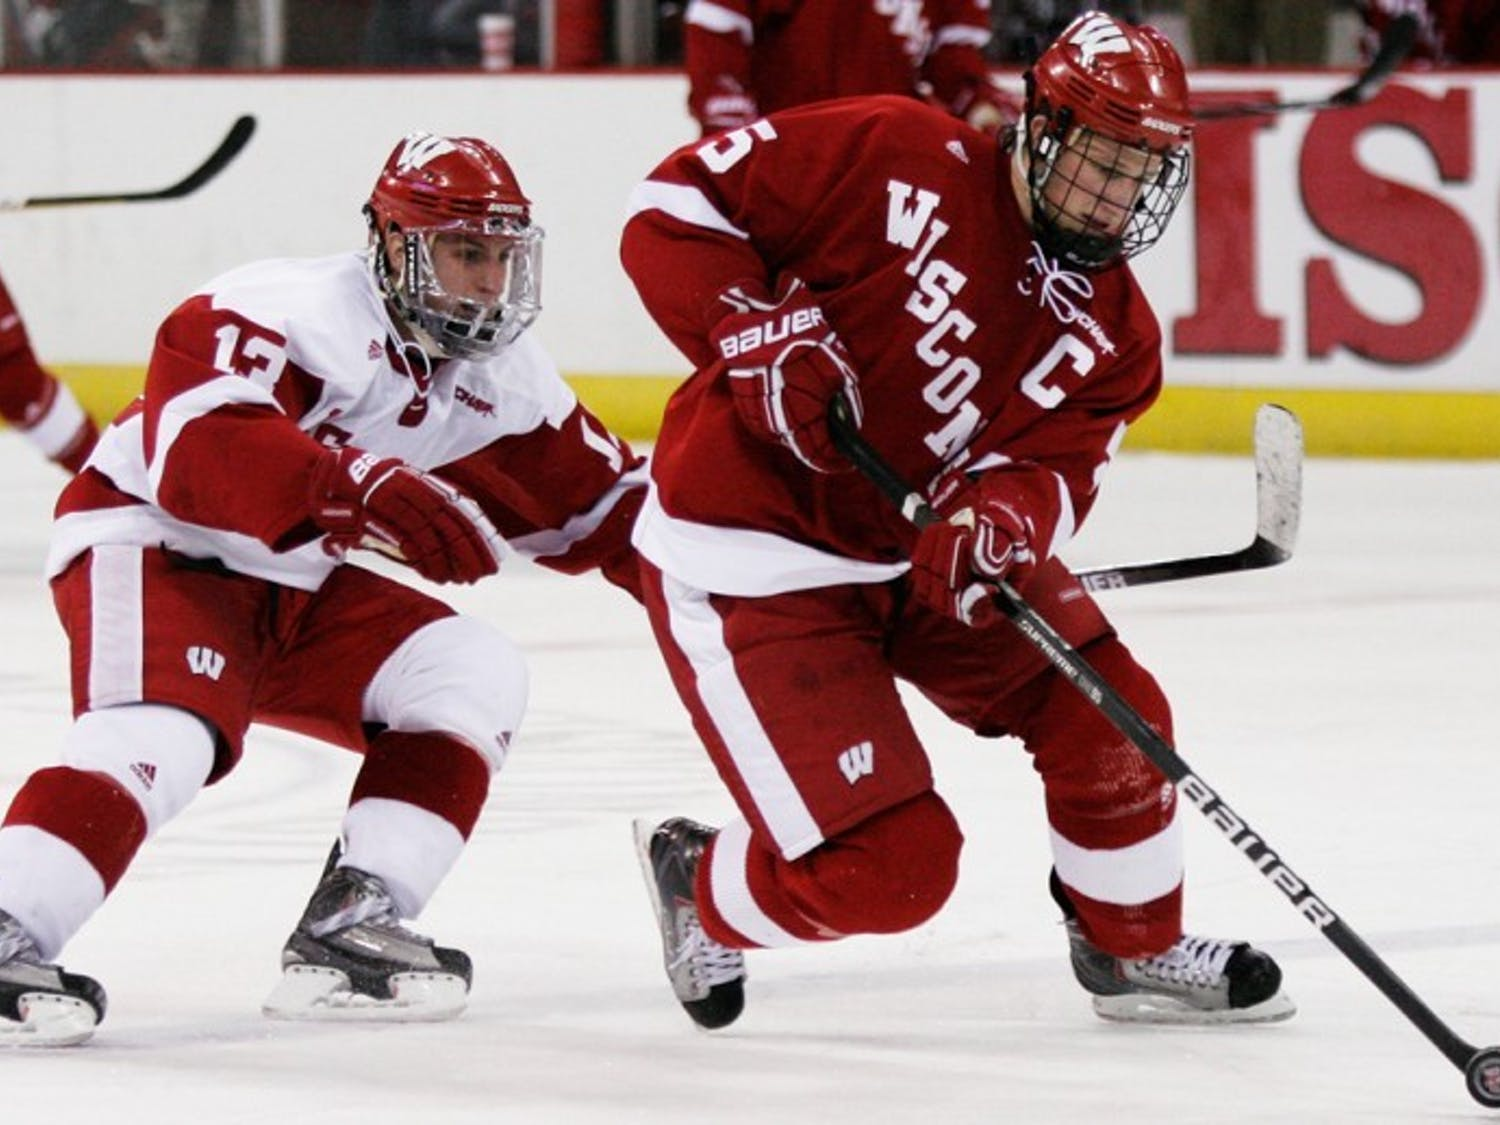 Badgers jump into WCHA play with season opener against CC